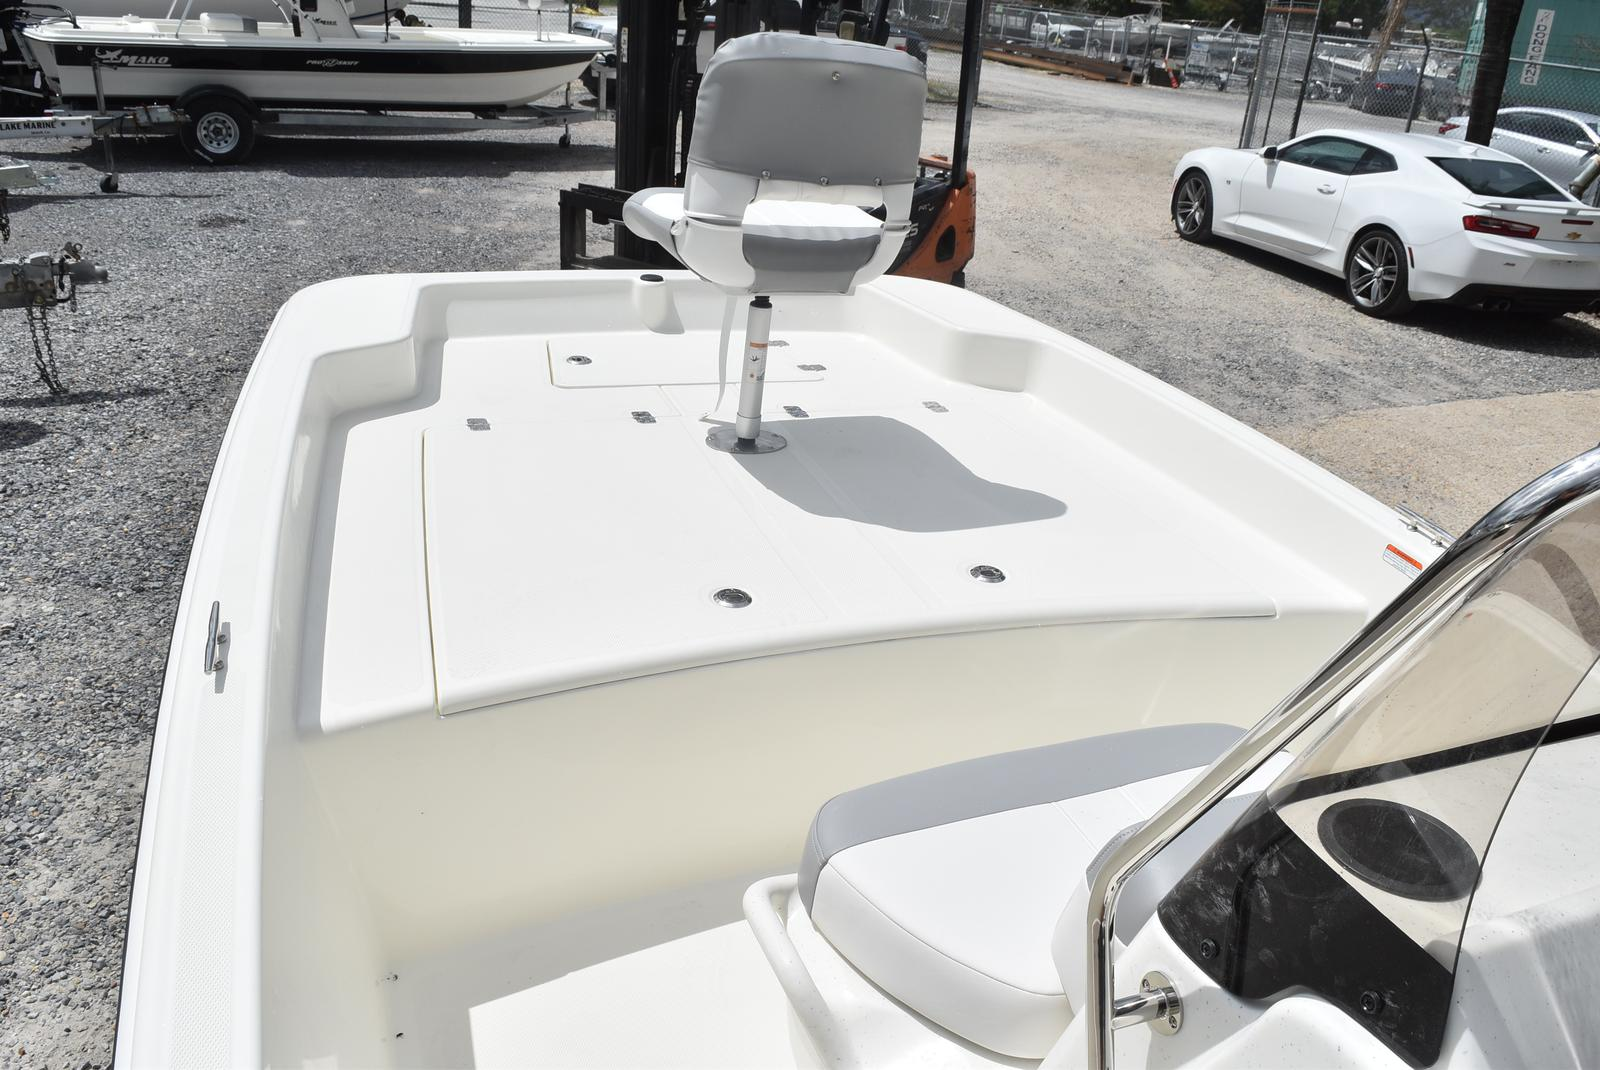 2020 Mako boat for sale, model of the boat is Pro Skiff 17, 75 ELPT & Image # 460 of 702